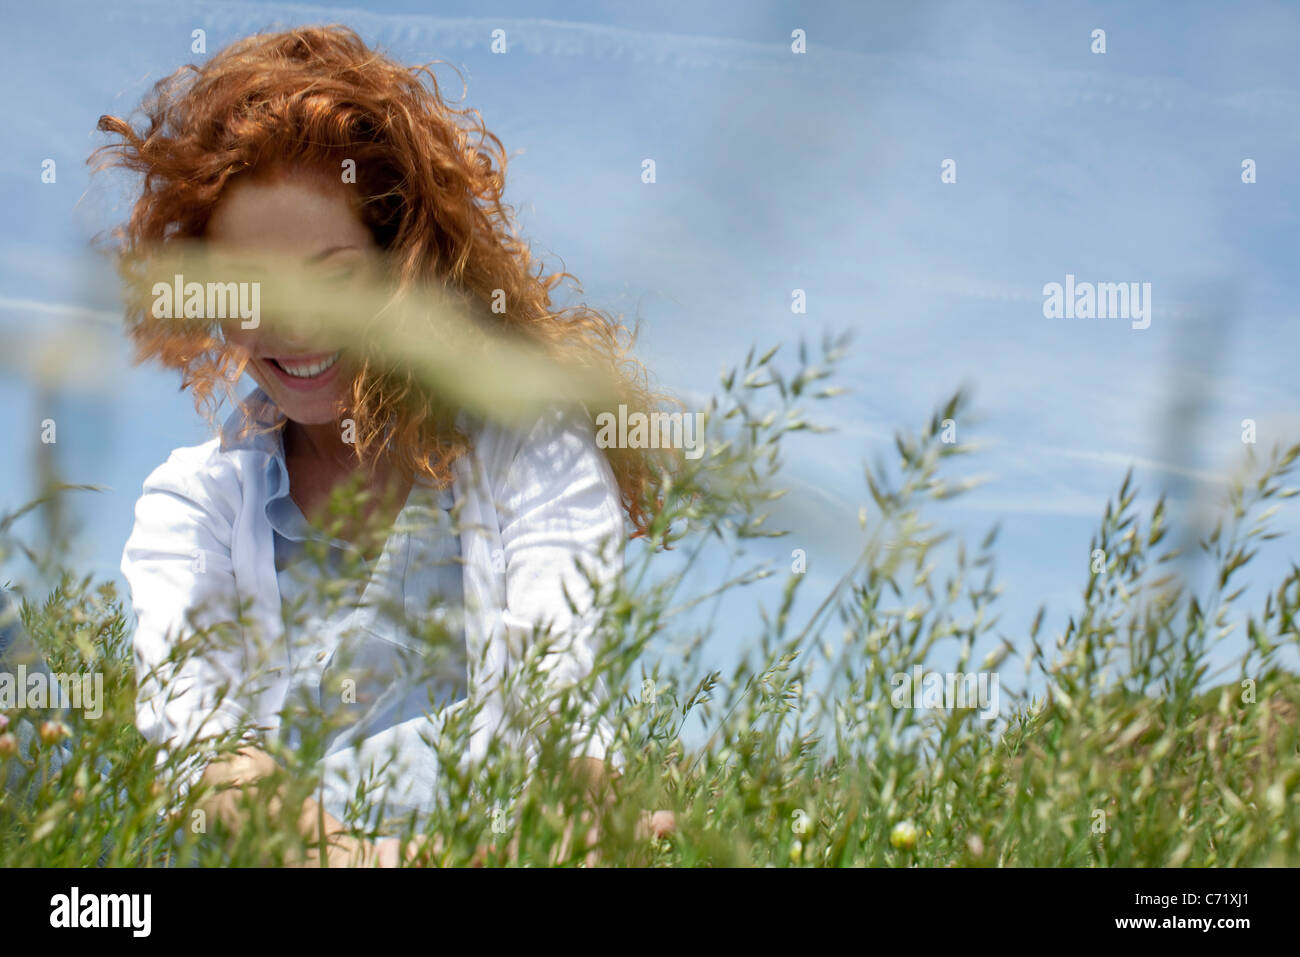 Redheaded woman in grass - Stock Image